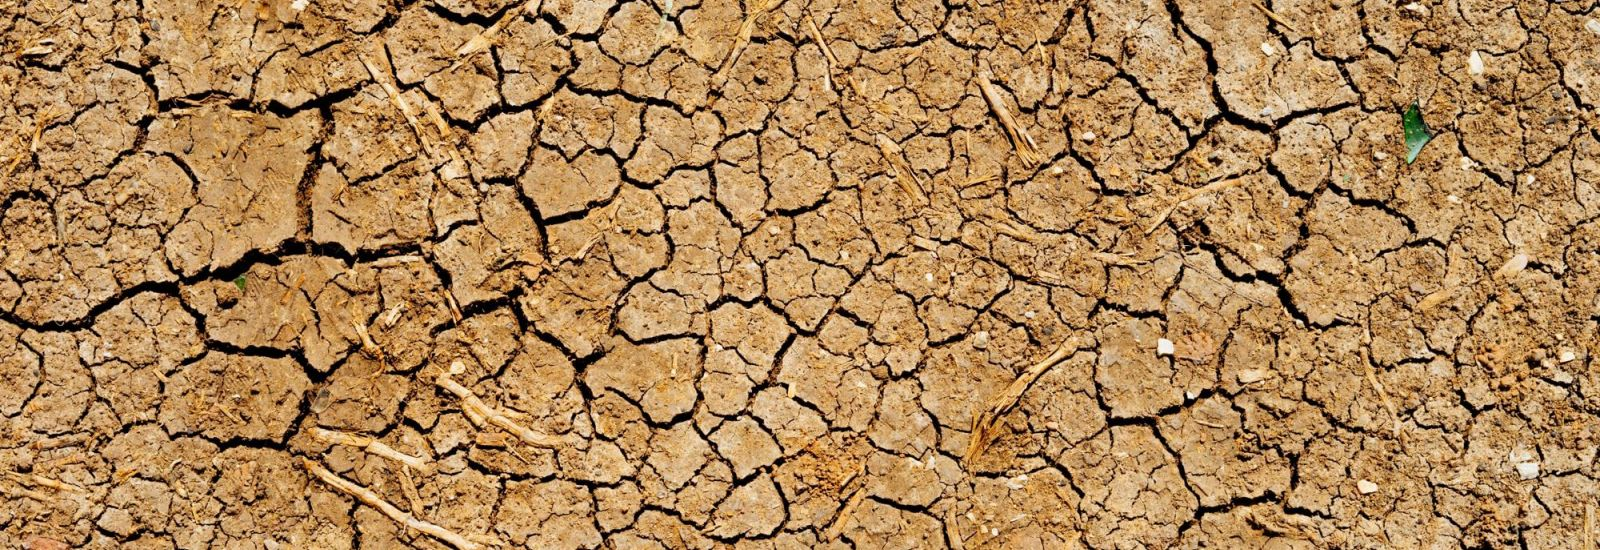 Overhead image of dry, cracked riverbed